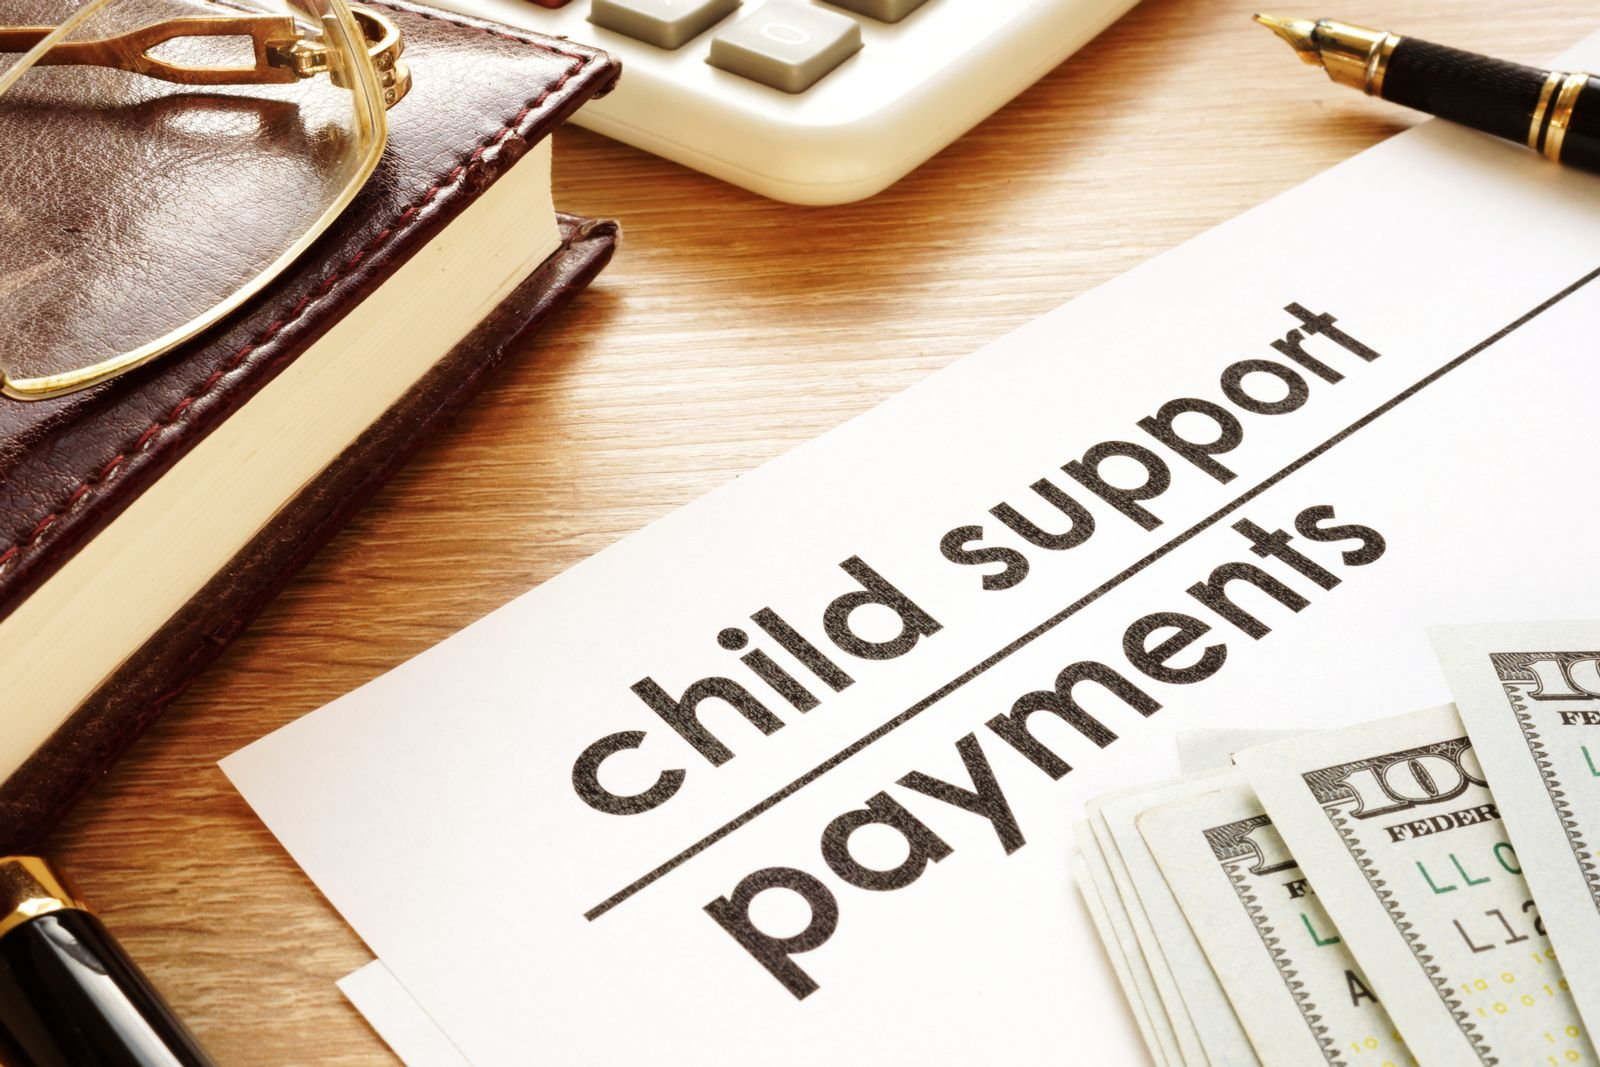 Child Support Agreement on Desk